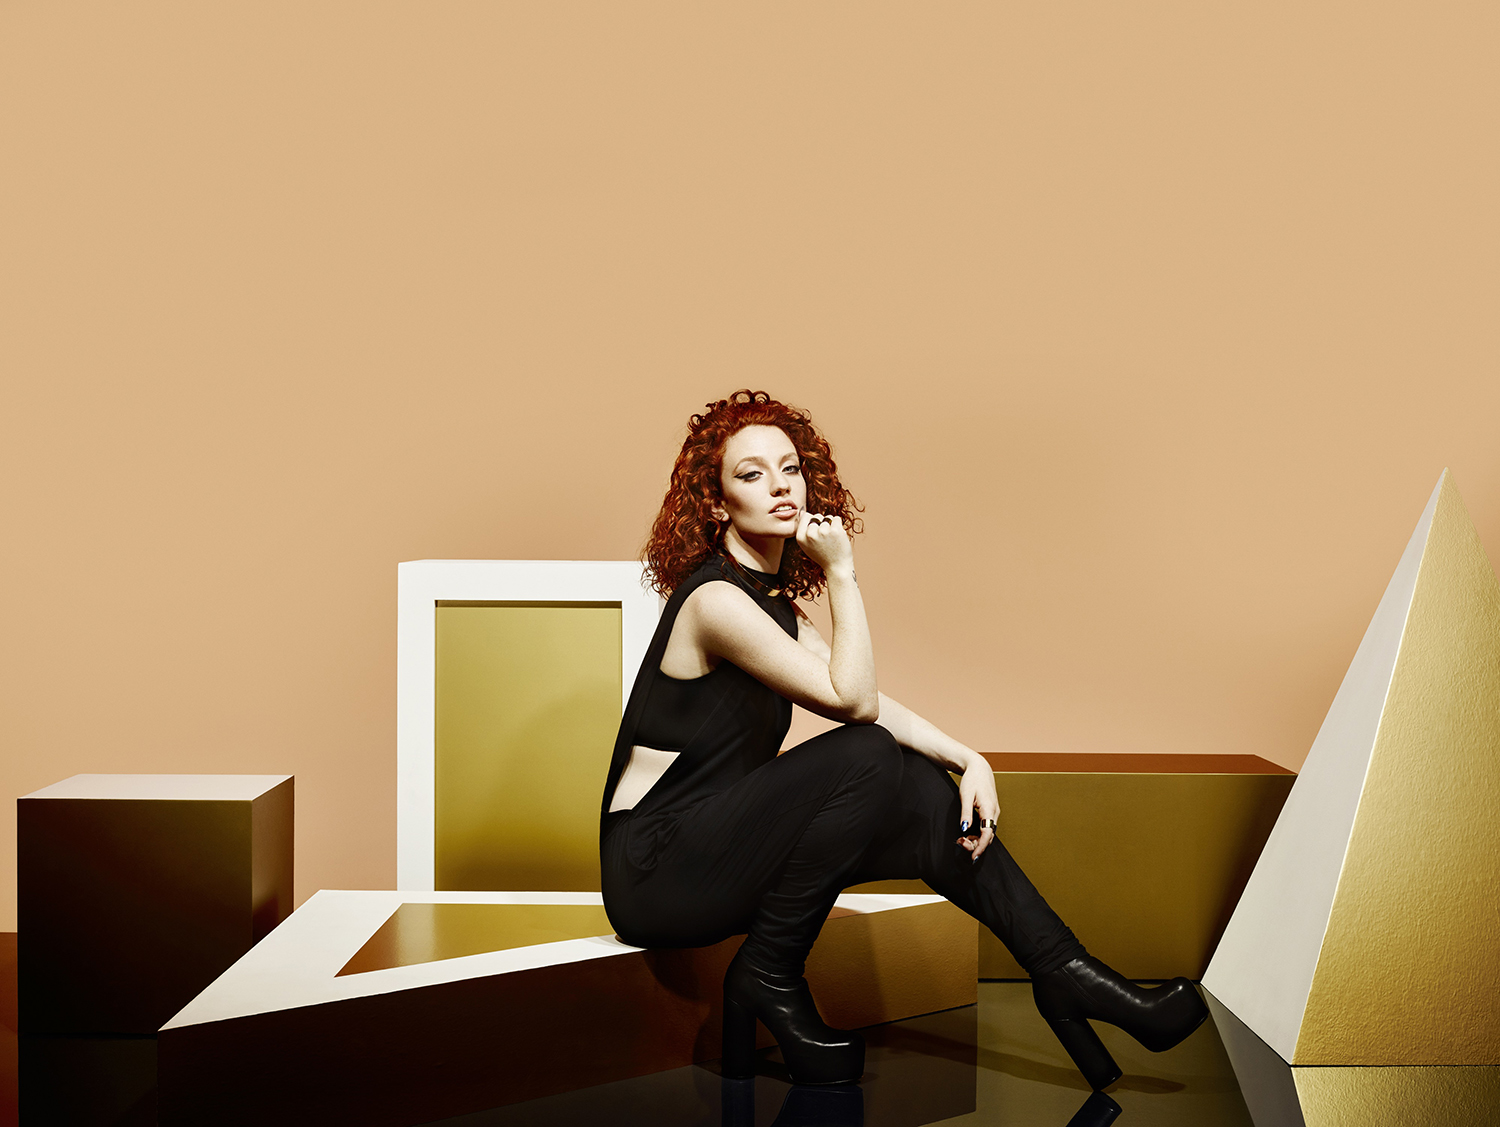 Selects_Bench 2015 - Jess Glynne44539LOWRES.jpg